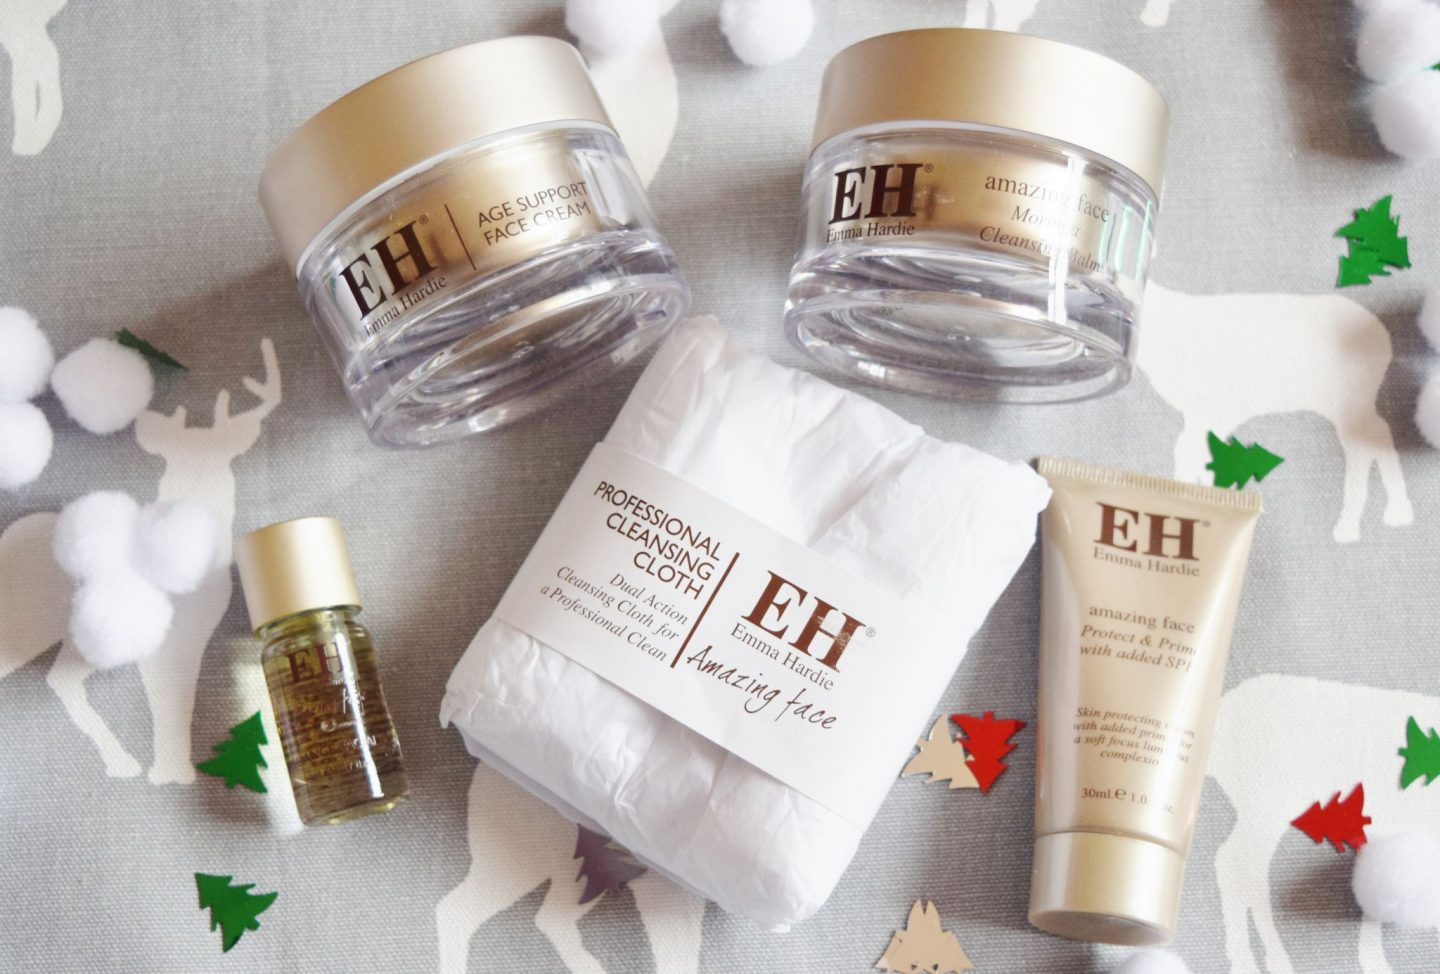 Emma Hardie Lift & Glow Skin Essentials Kit